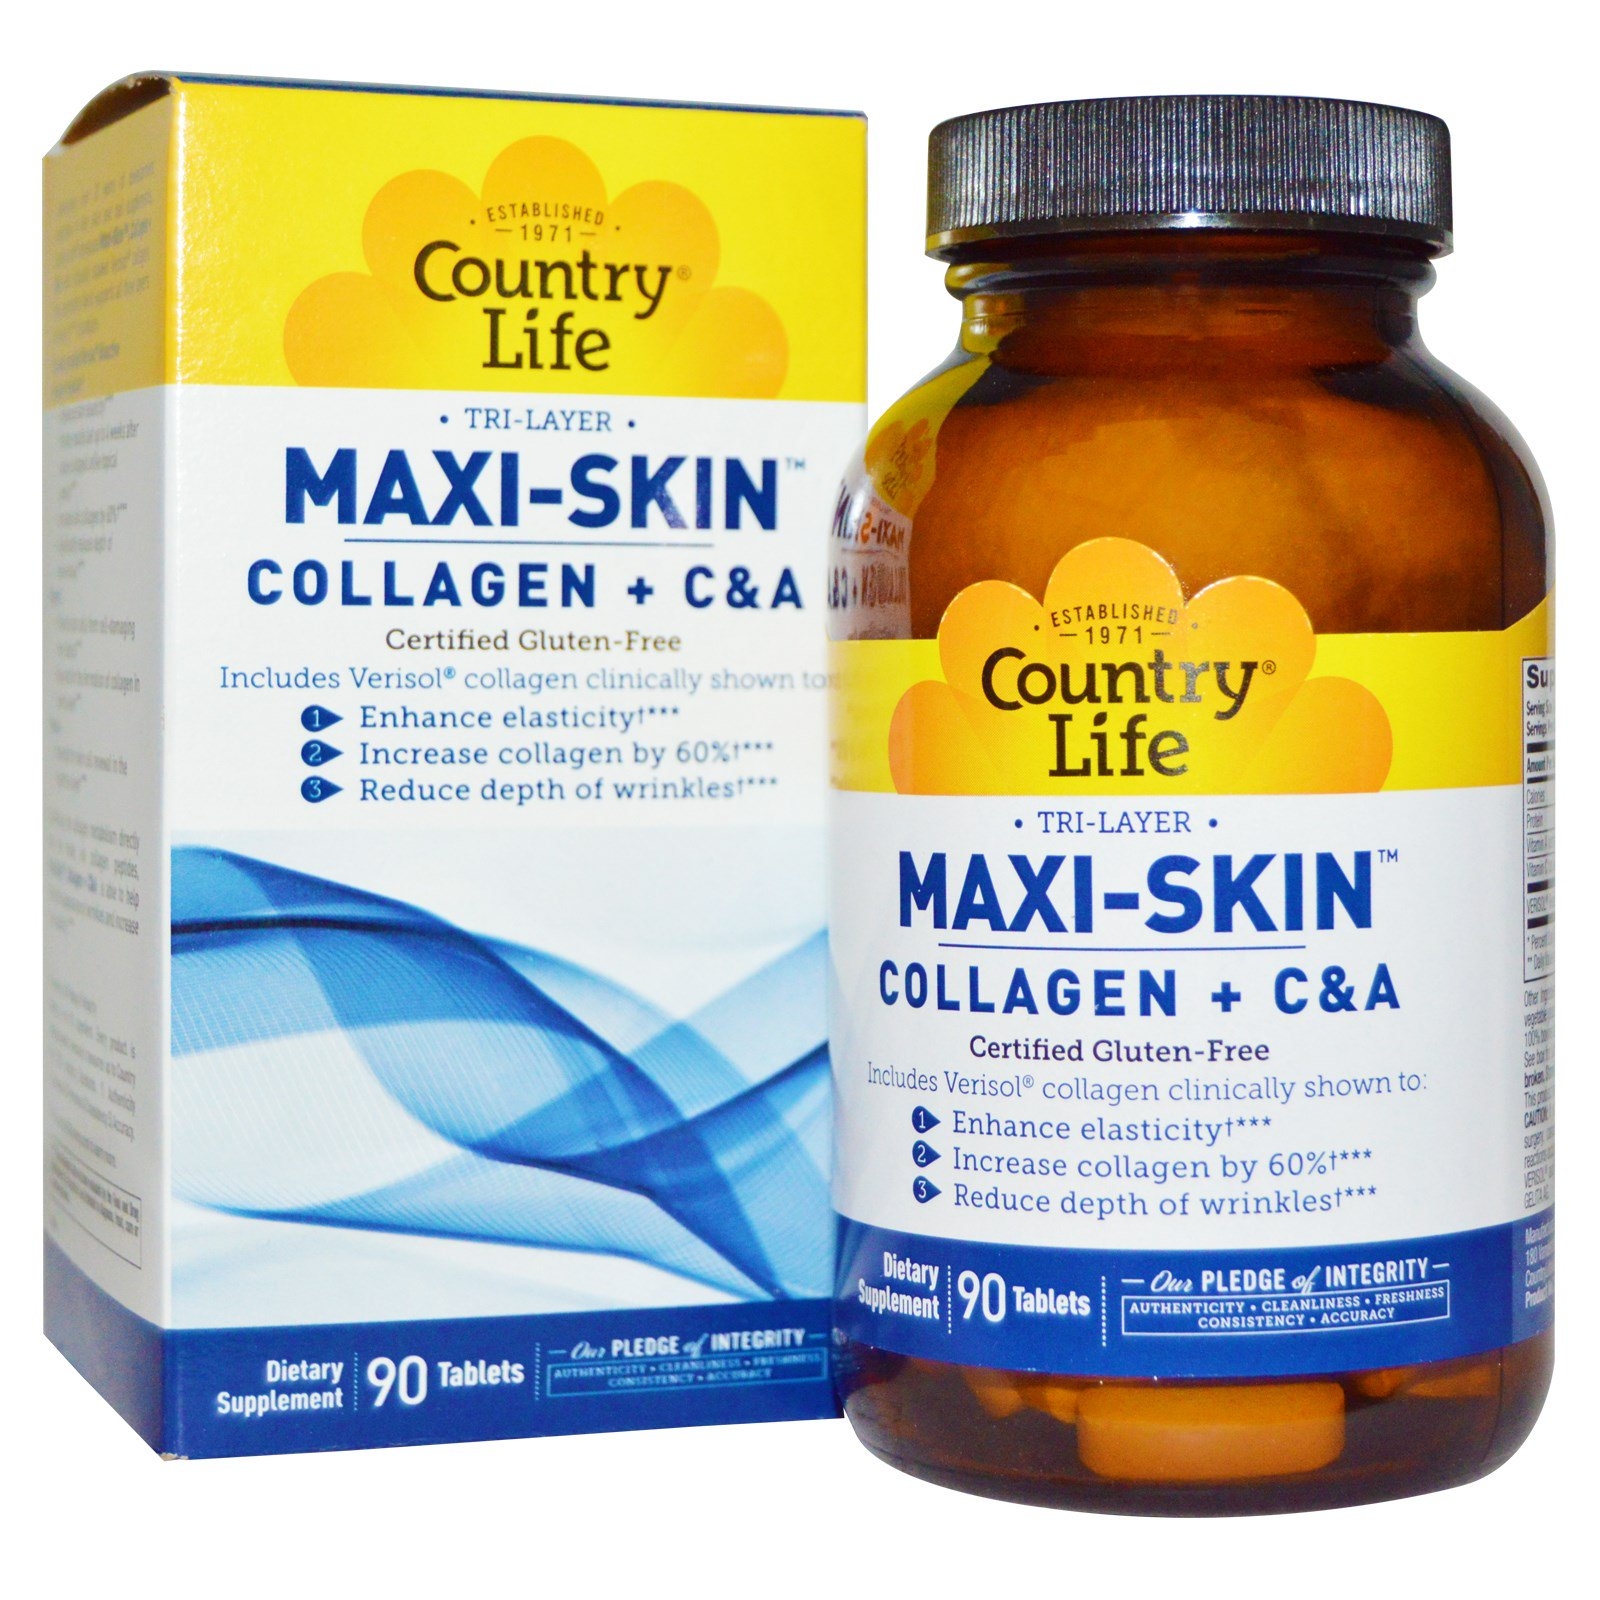 Maxi-Skin Vitality by Country LIfe - 4.3 Ounces Soo Ae Nature Propolis Collagen Essence Mask, 0.85 oz